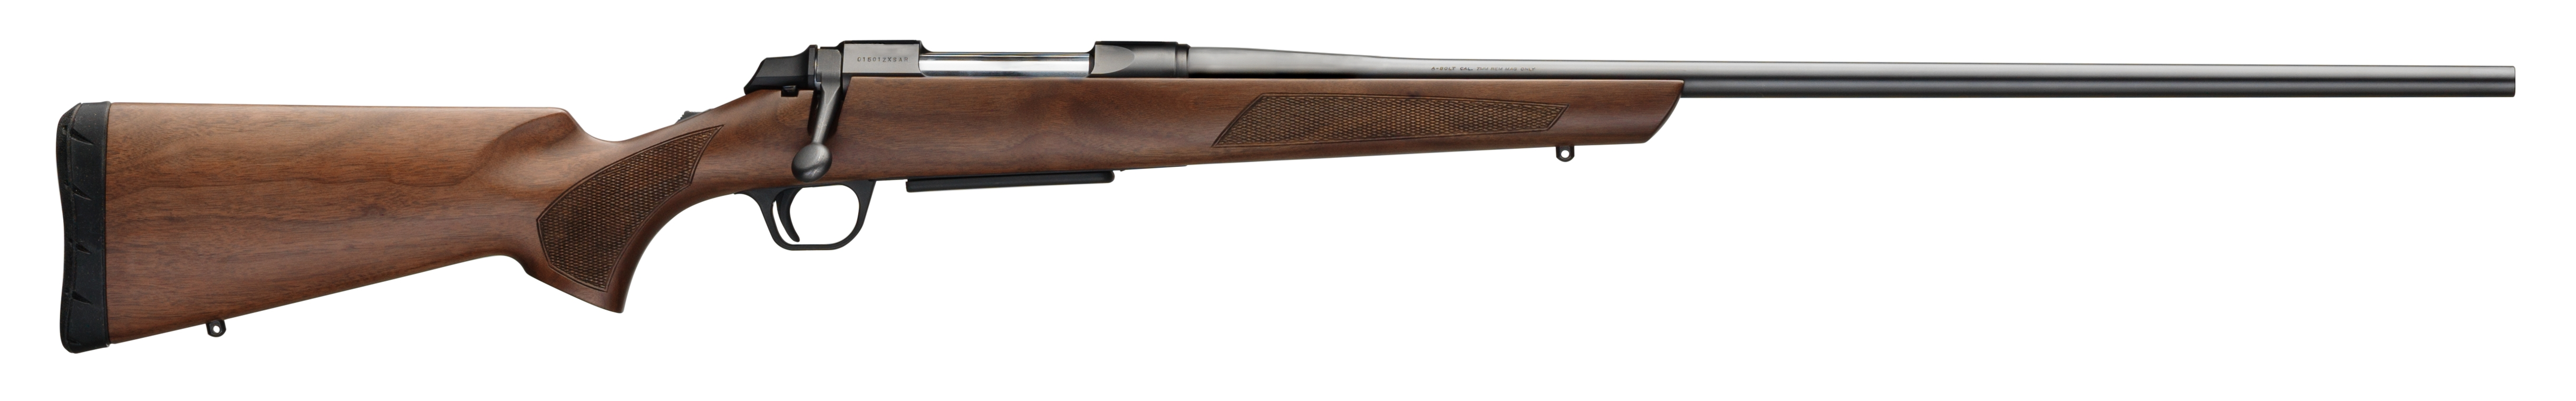 The AB3 Hunter is more than the sum of its parts. It has proven Browning accuracy, proven Browning design, classic Browning looks  and a level of performance you are accustomed too.